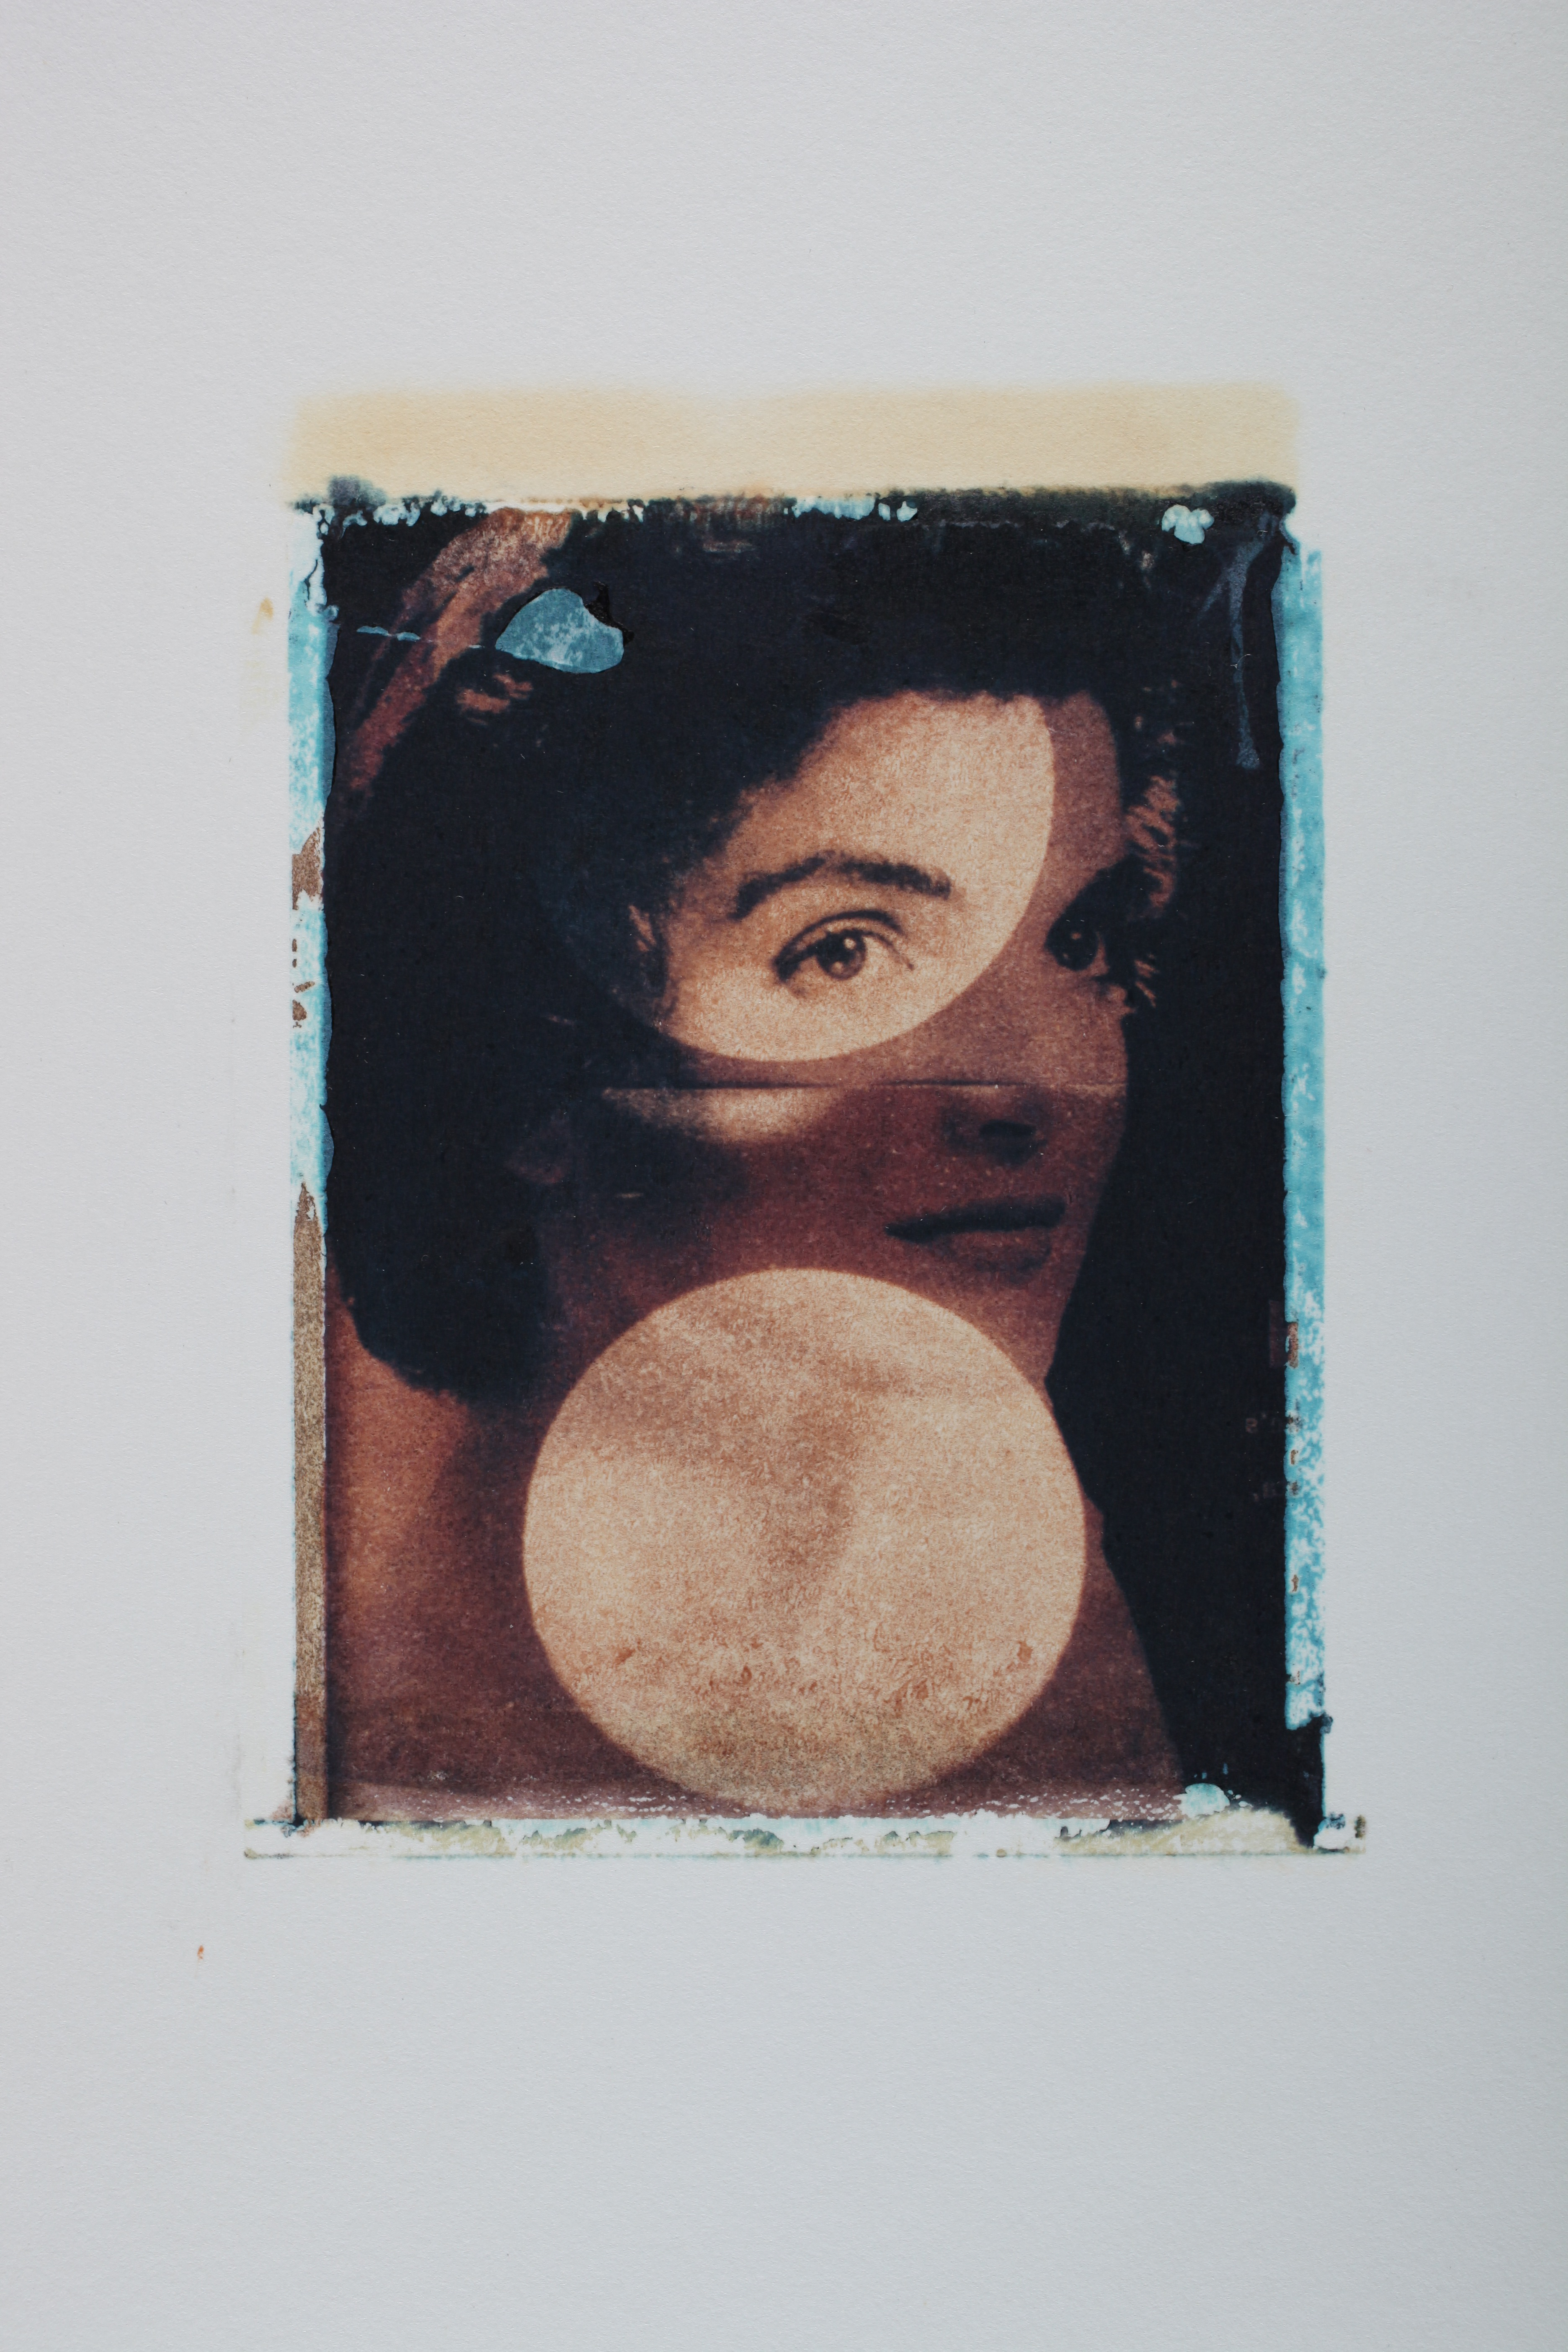 Multi-layered Polaroid image by Robert Seydel with Jackie Kennedy and circular shapes